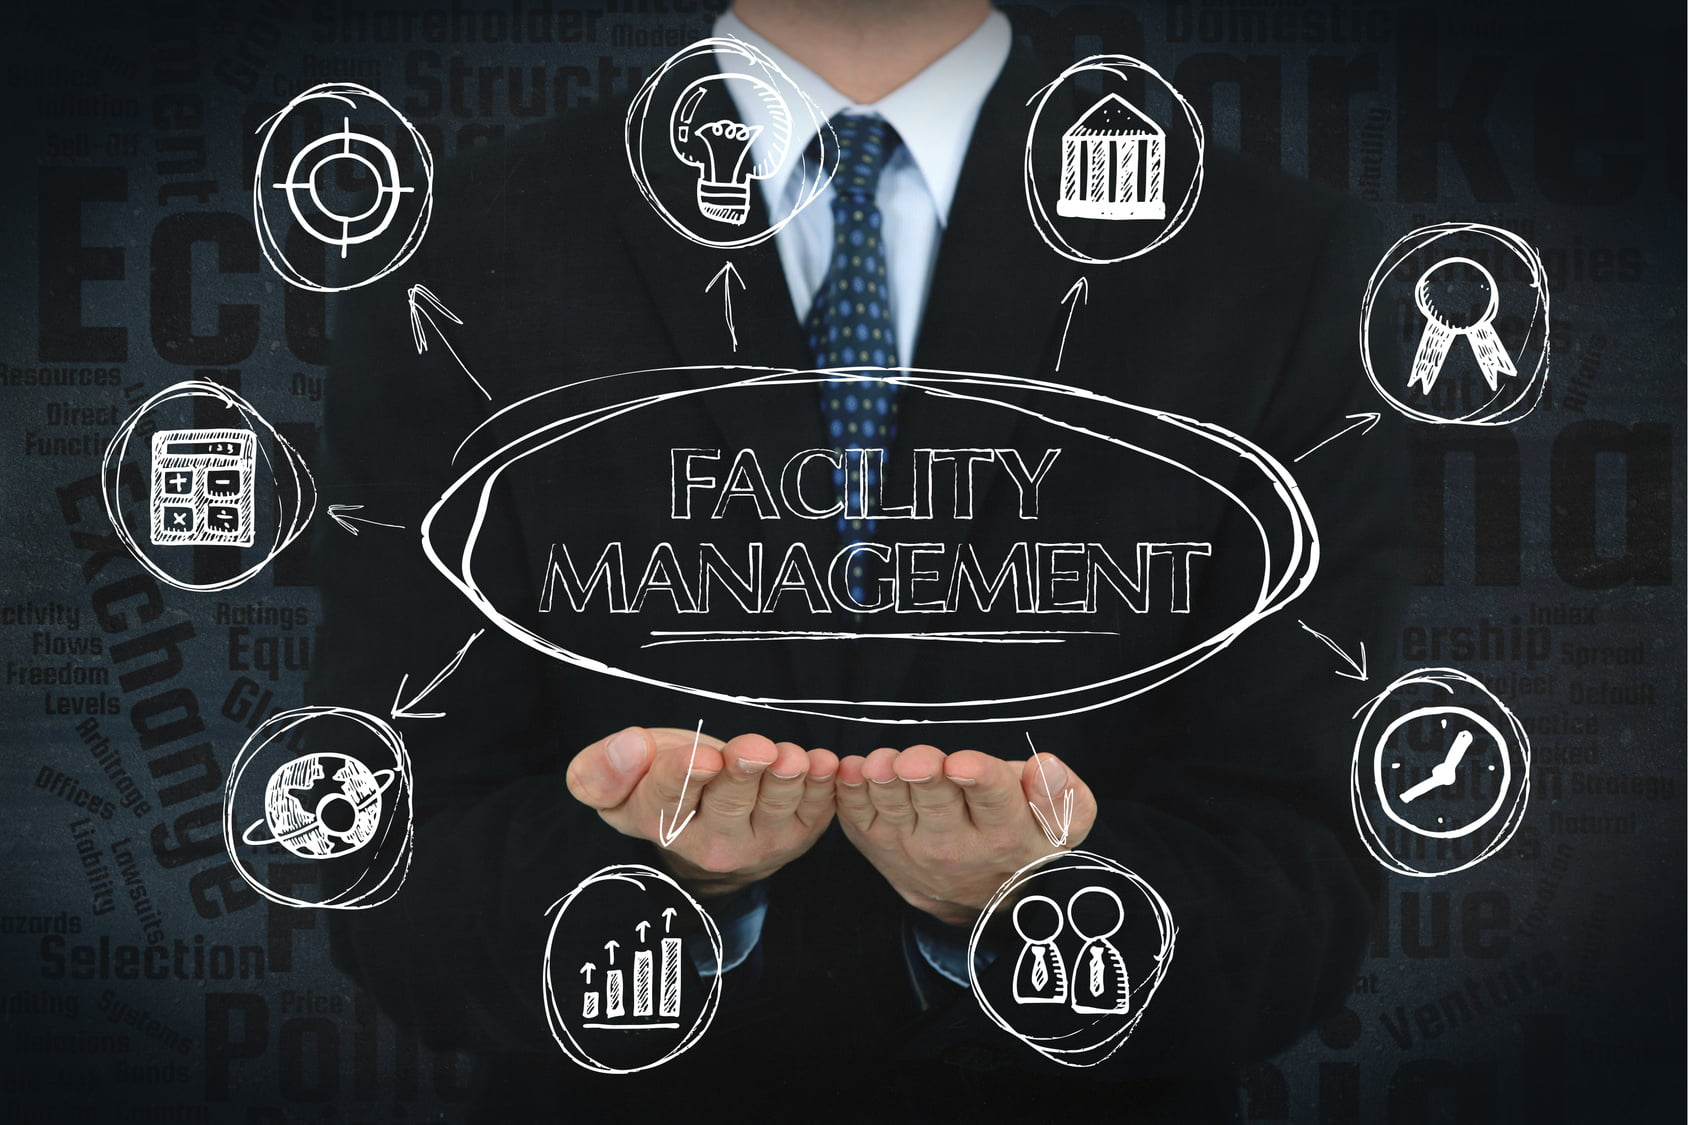 Do You Have What It Takes To Be A Facilities Manager